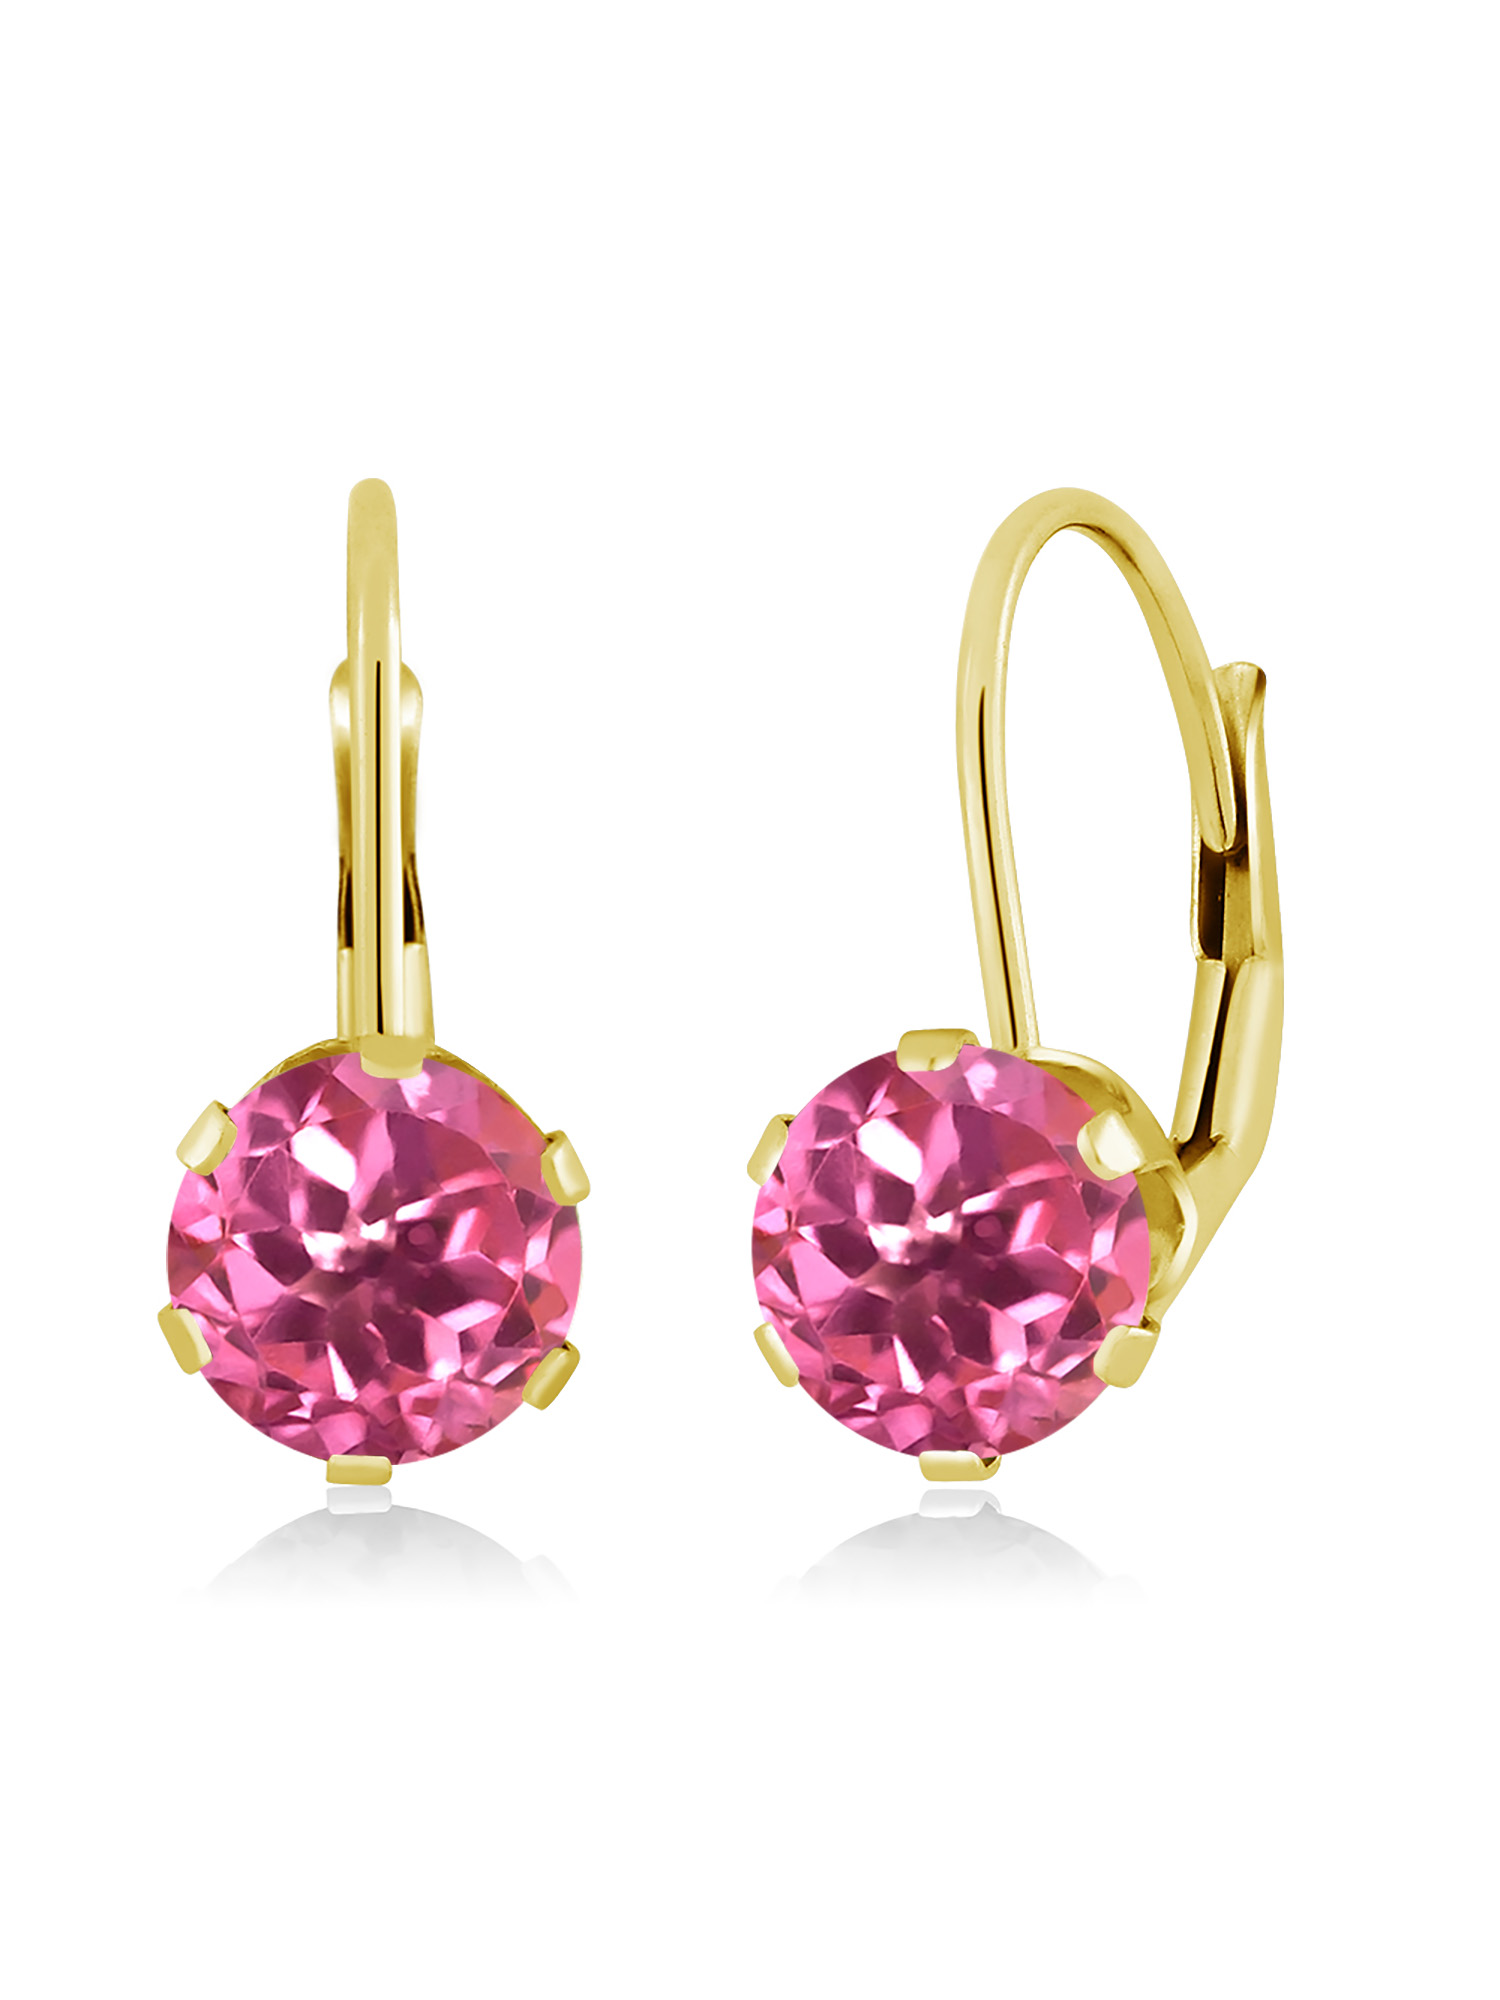 2.00 Ct Round Pink Mystic Topaz 14K Yellow Gold Earrings by